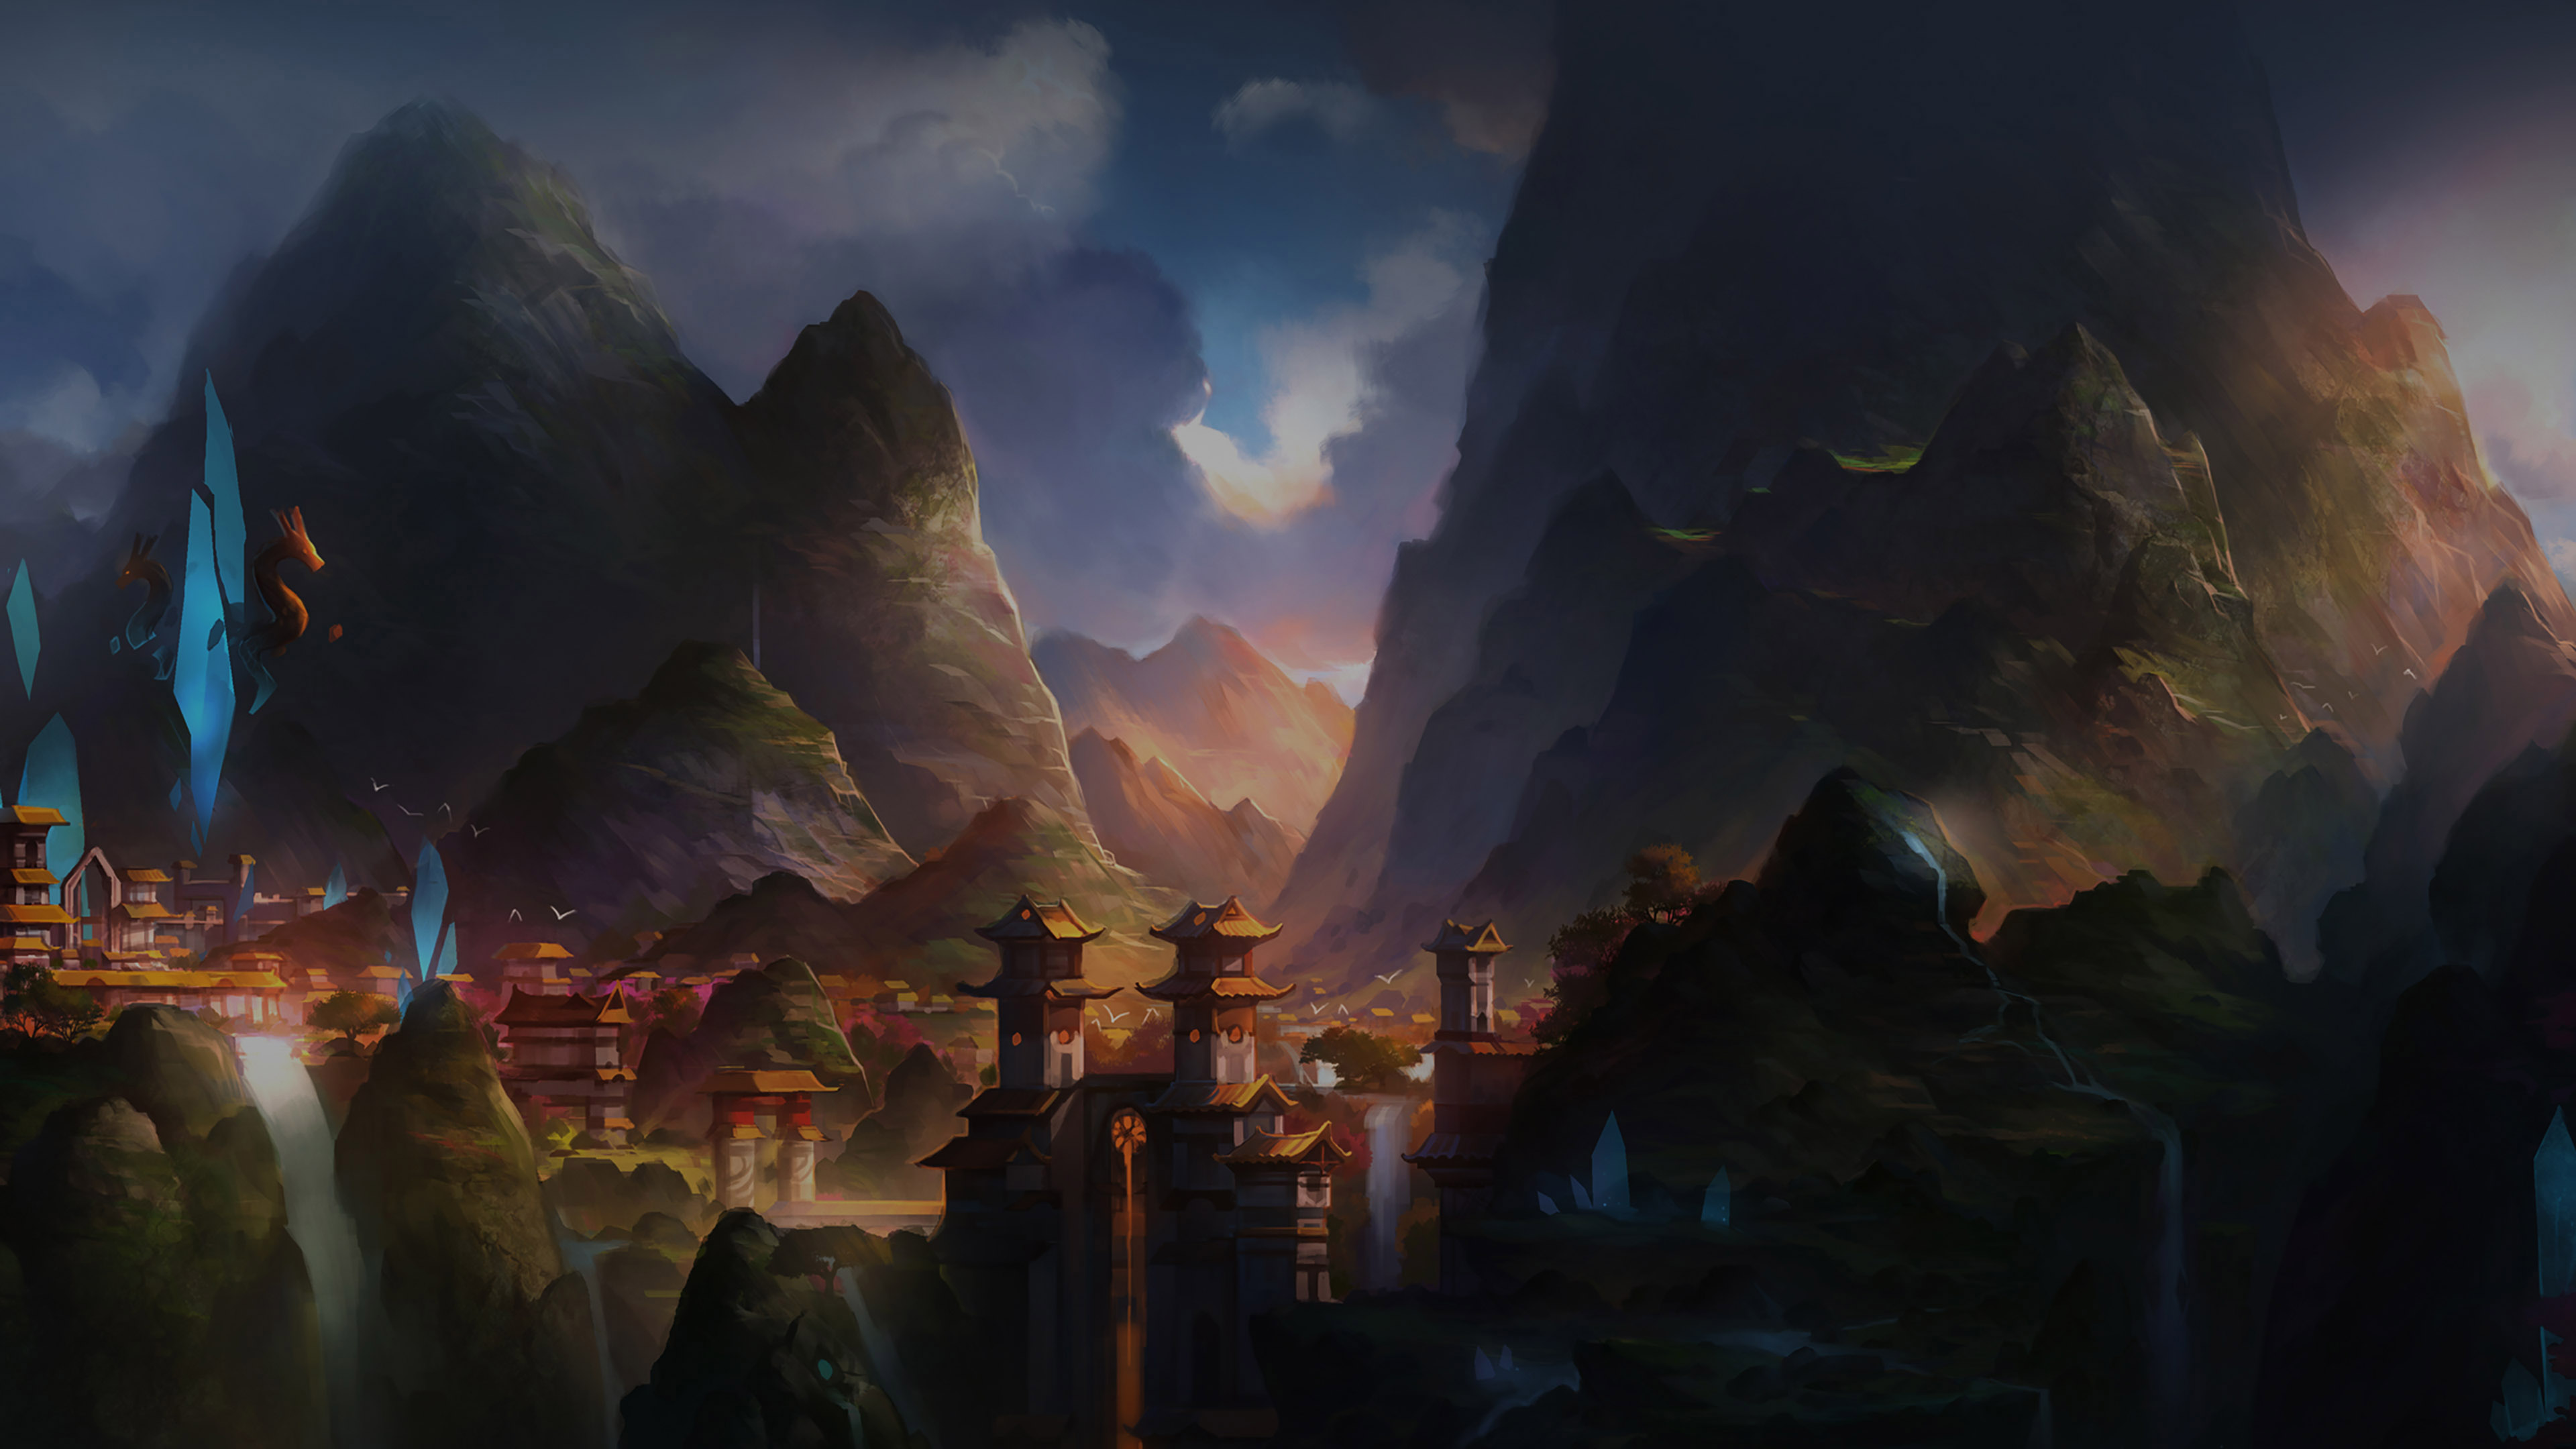 af68-mountain-art-illust-china-anime-peaceful - Papers.co